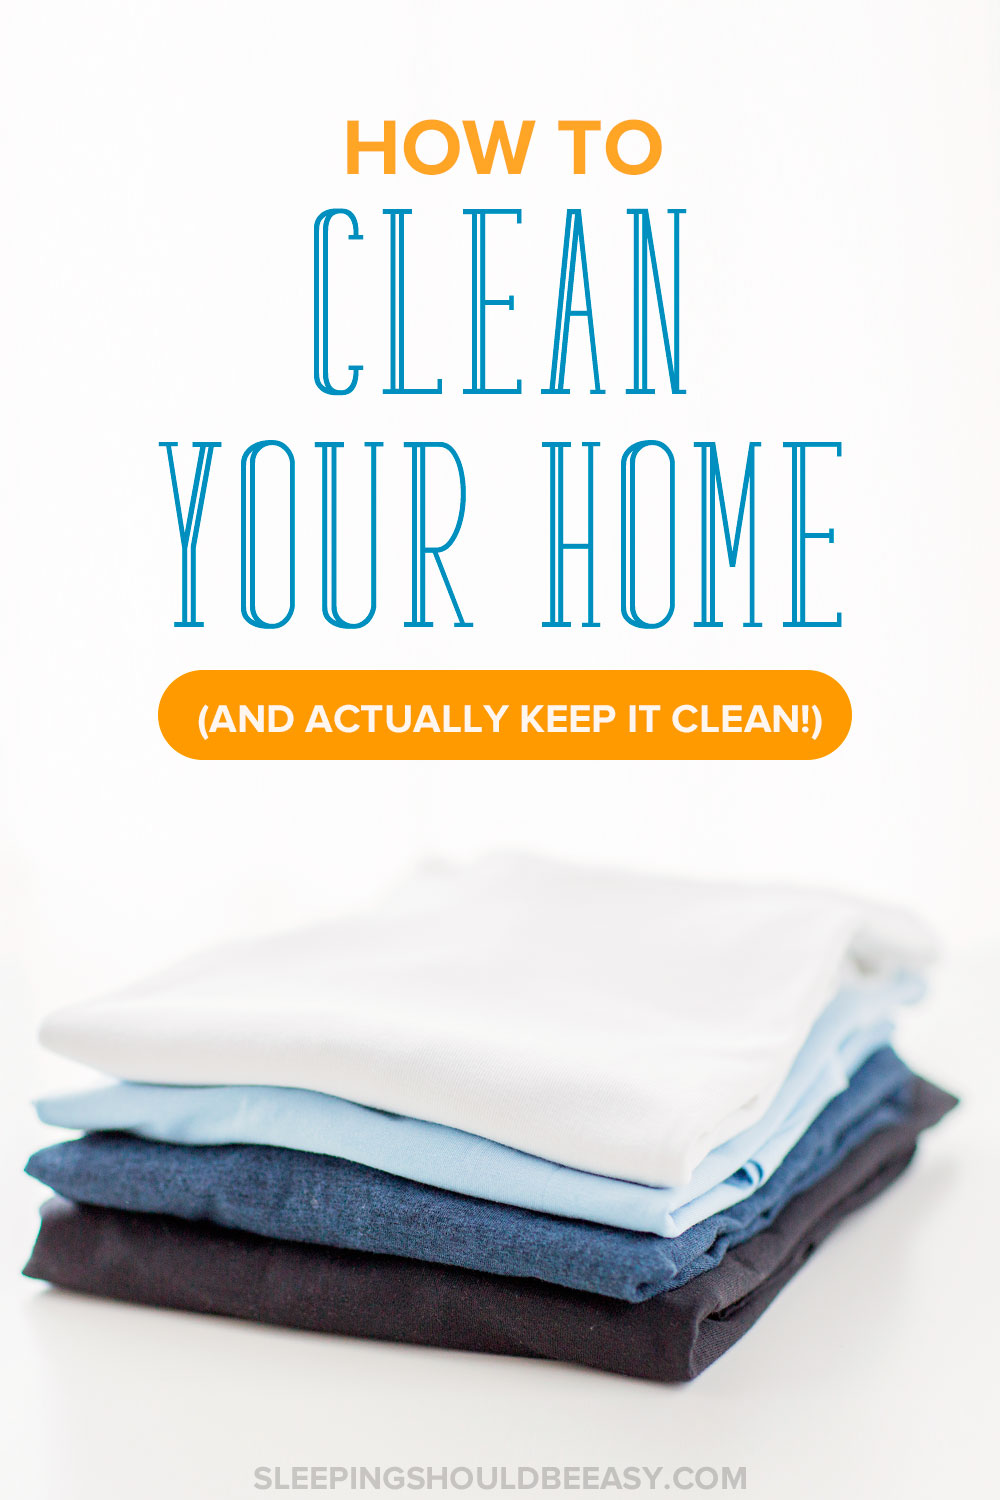 Keep It Clean How To Clean Your Home And Actually Keep It Clean